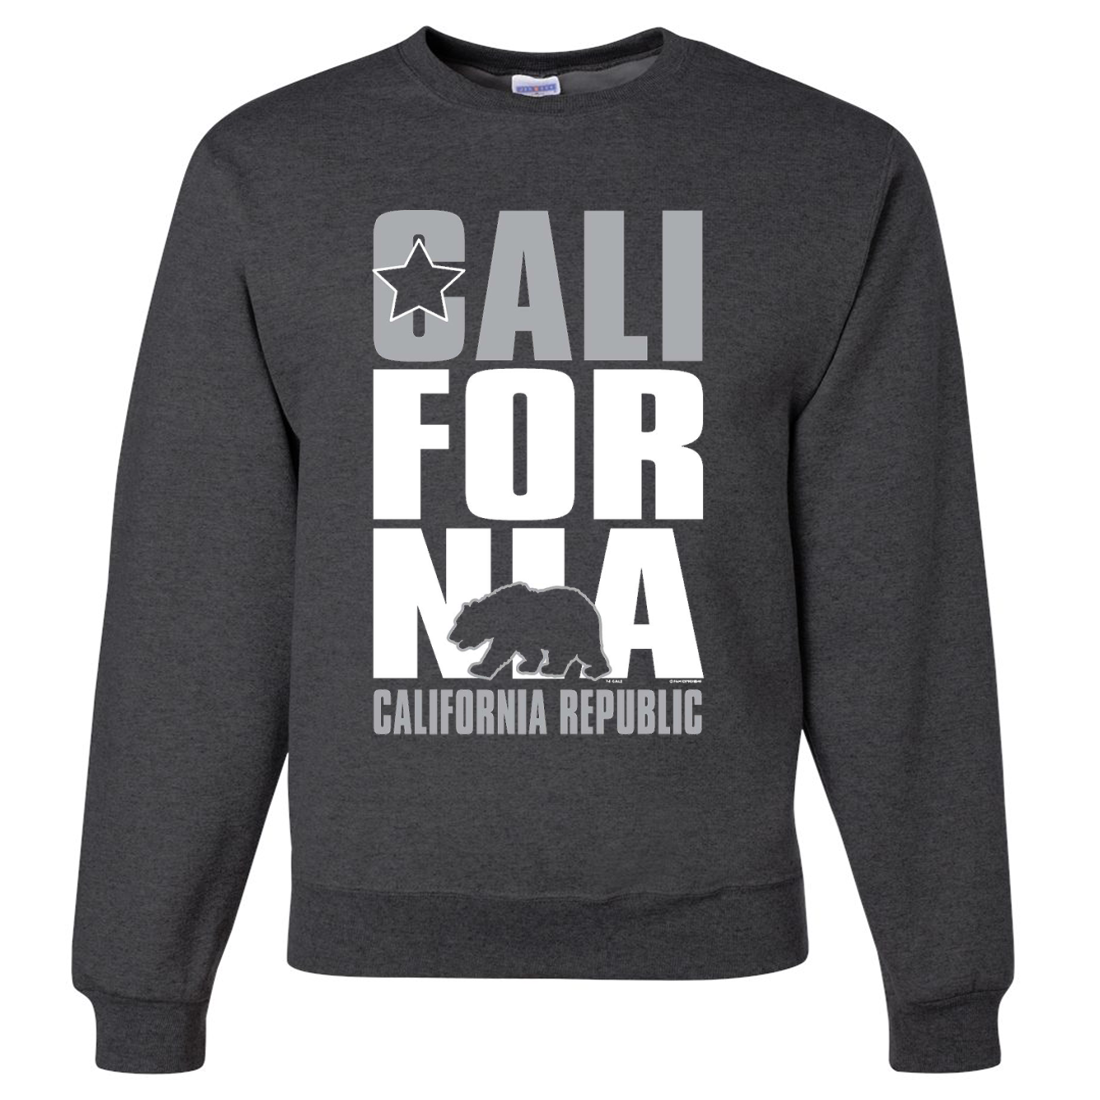 California Republic Raiders Style Crewneck Sweatshirt